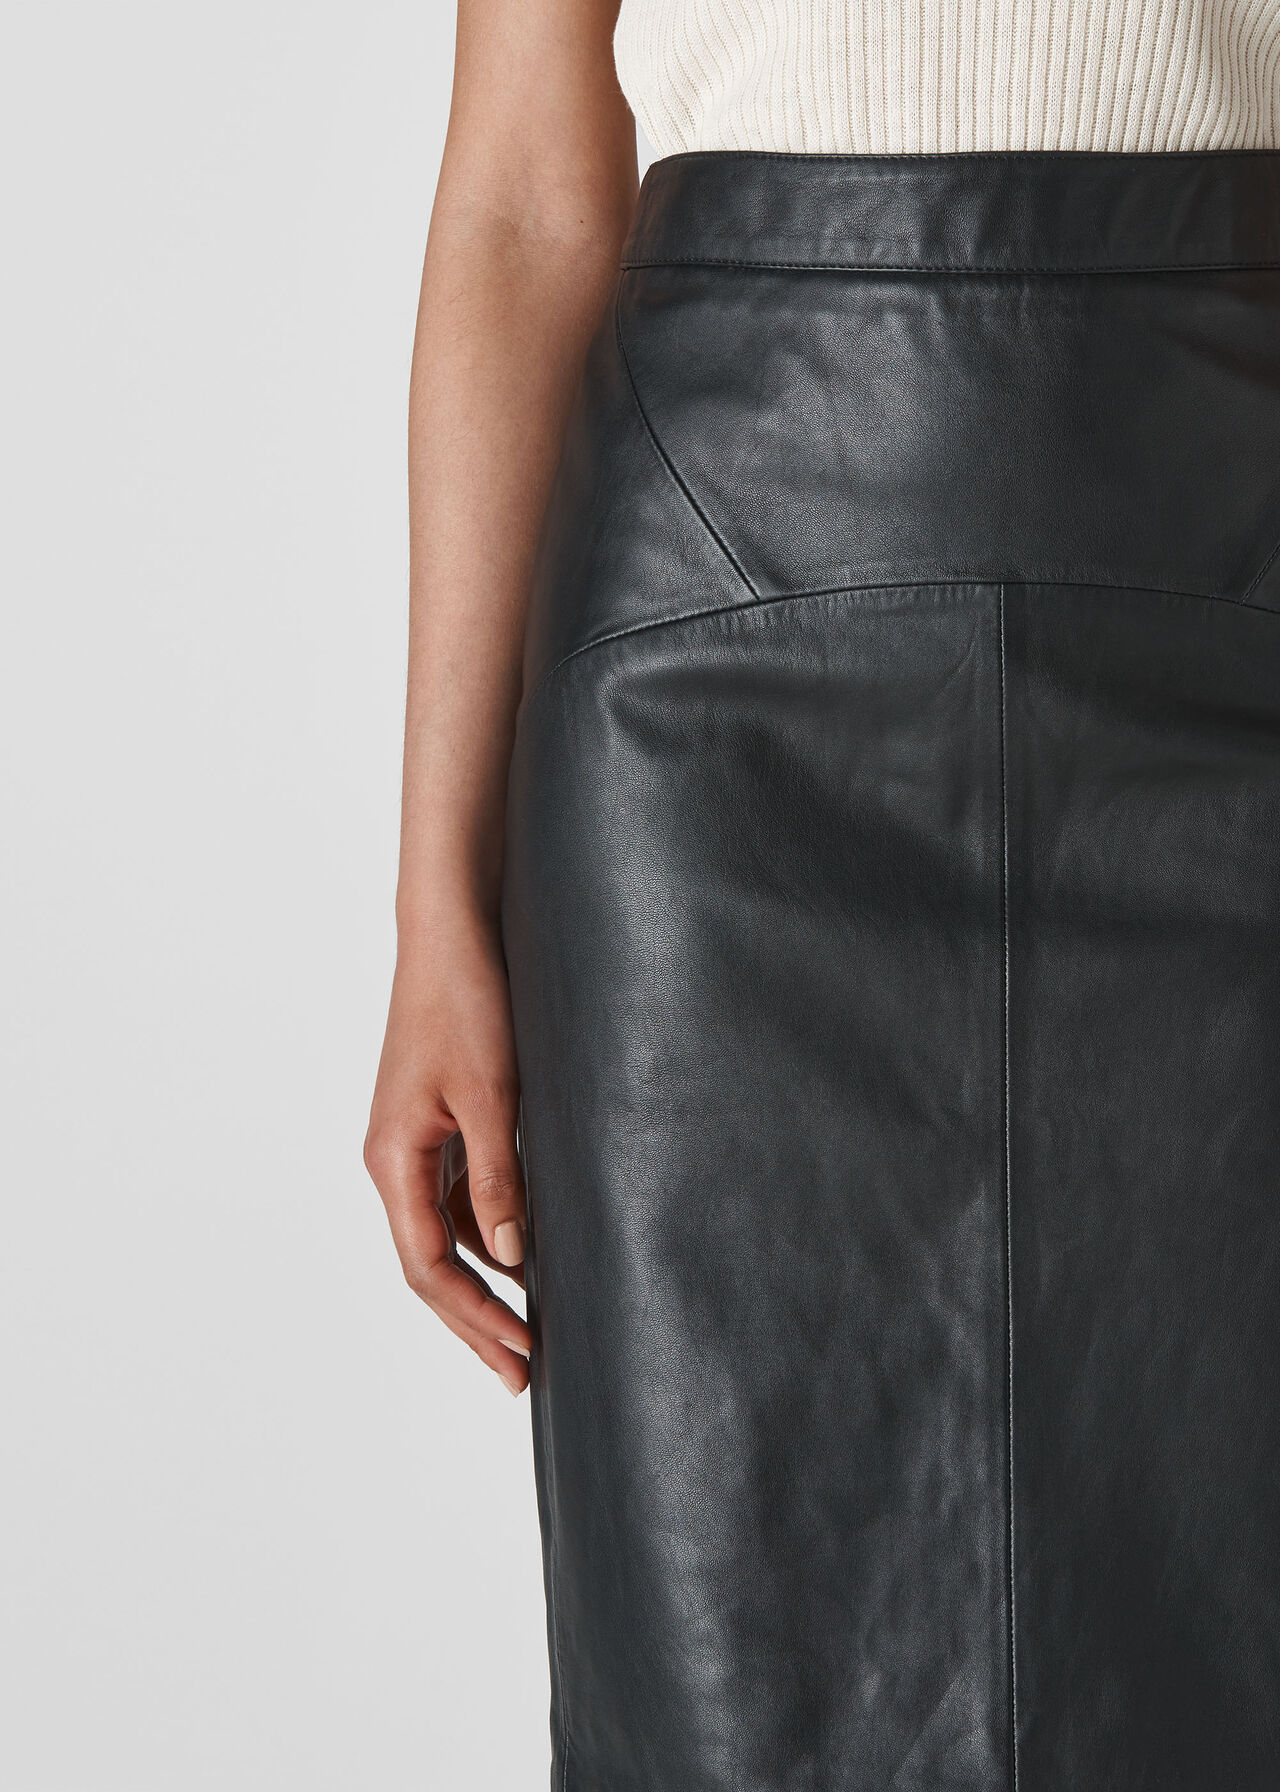 Kel Leather Pencil Skirt